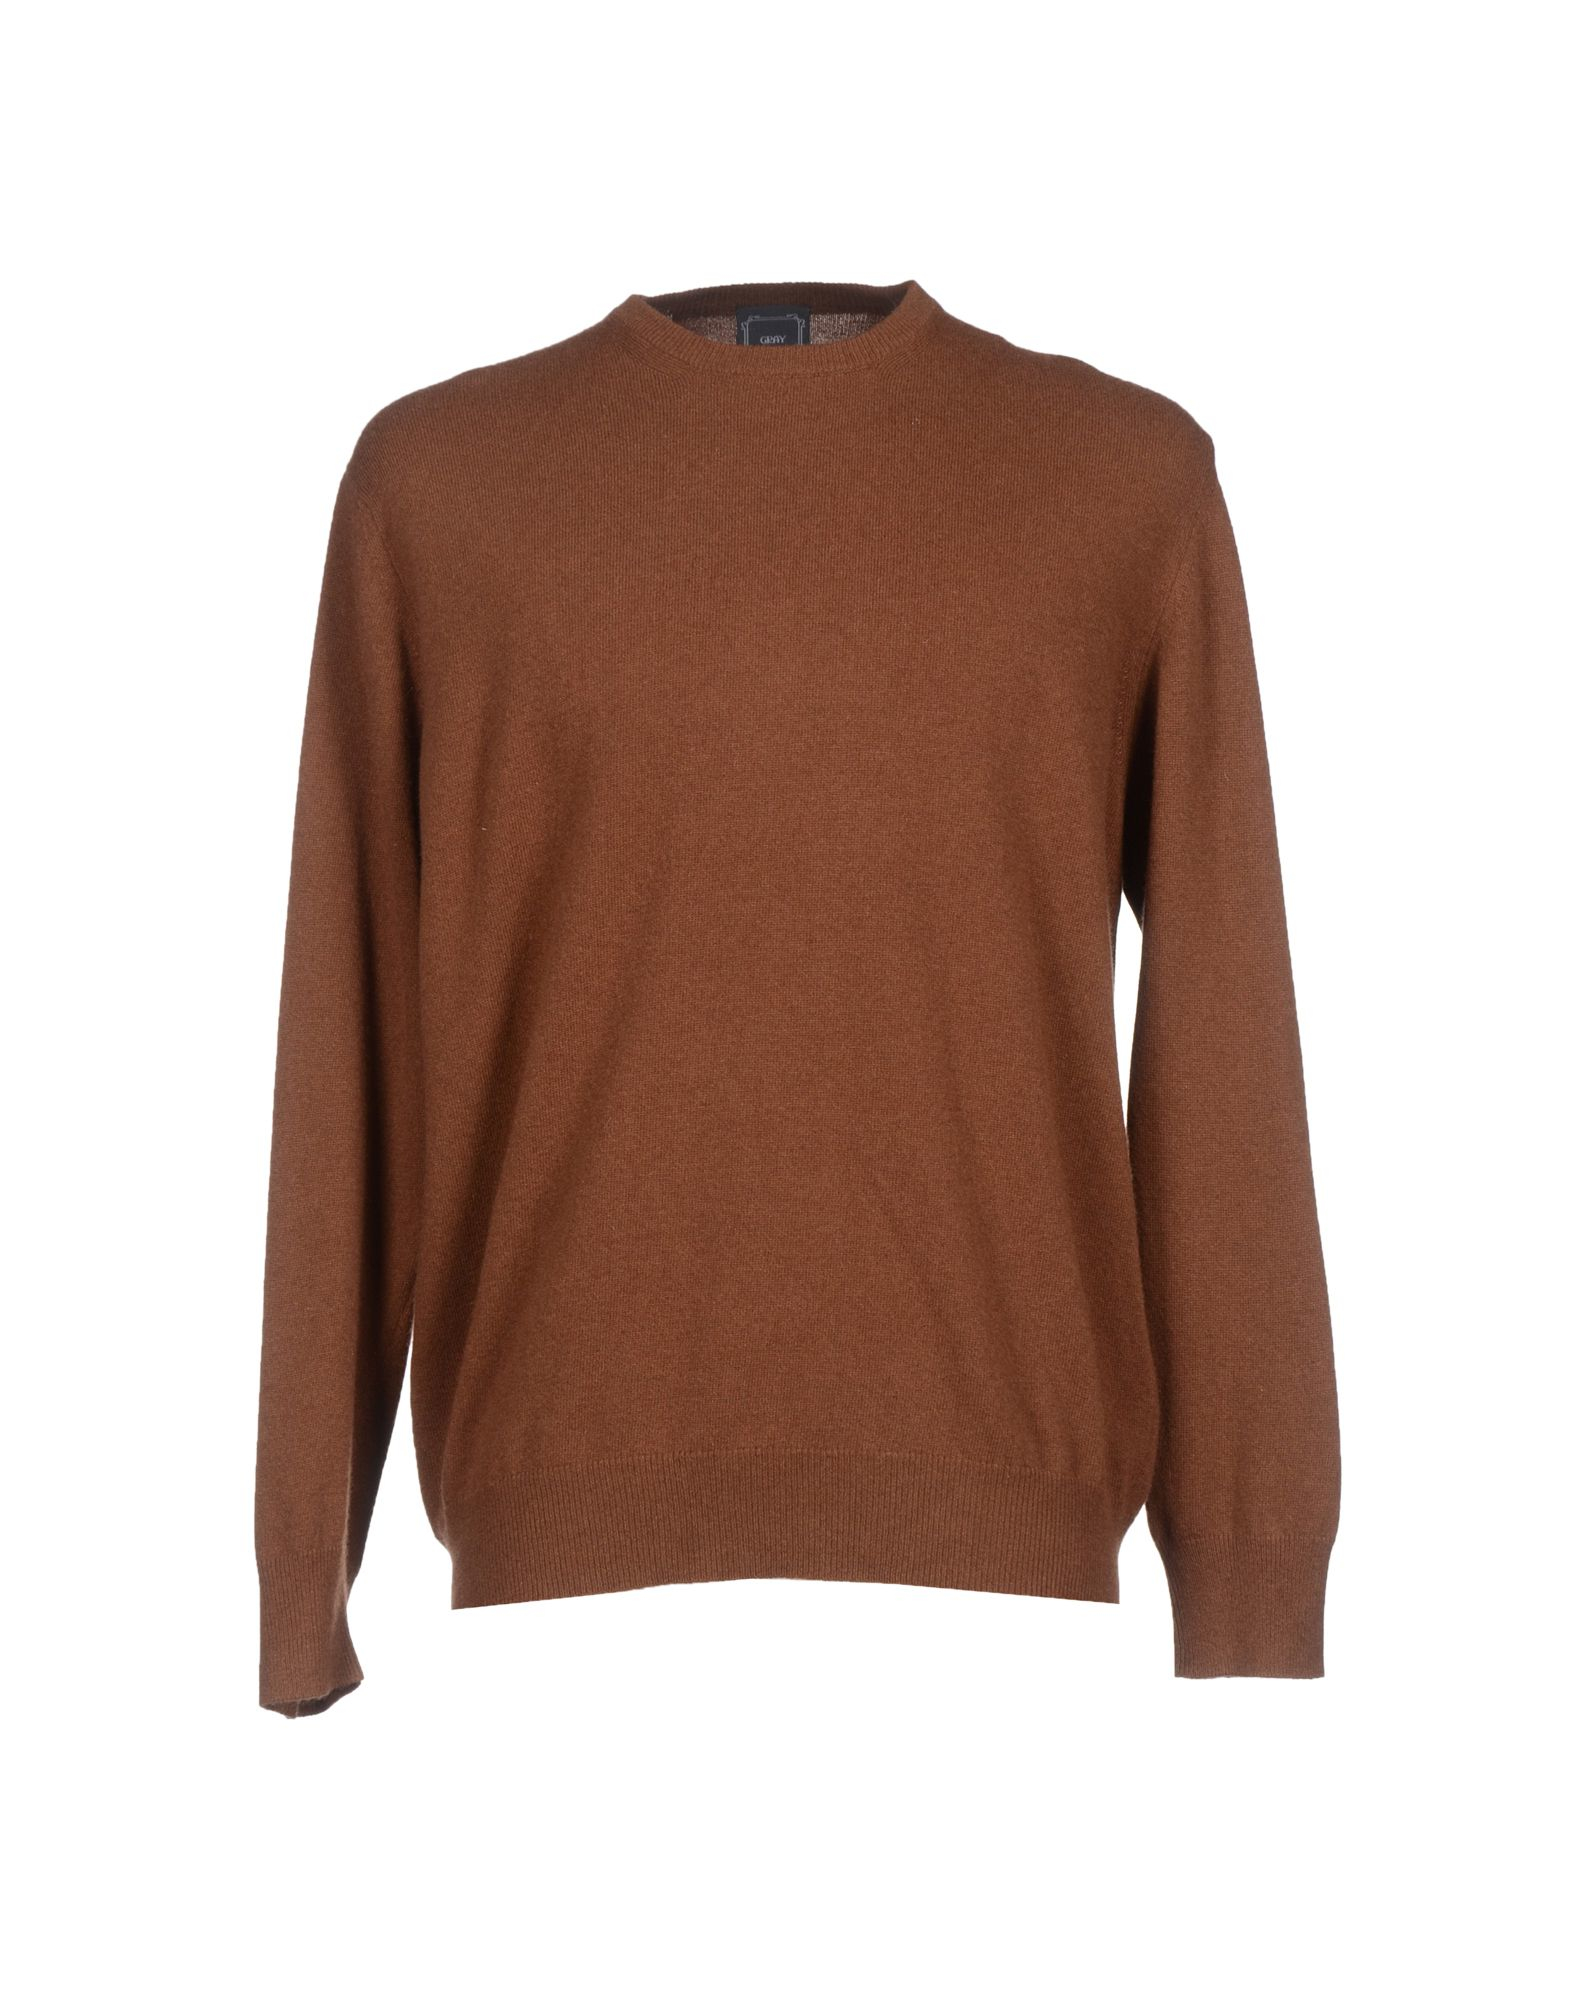 Find brown from the Womens department at Debenhams. Shop a wide range of Jumpers products and more at our online shop today.